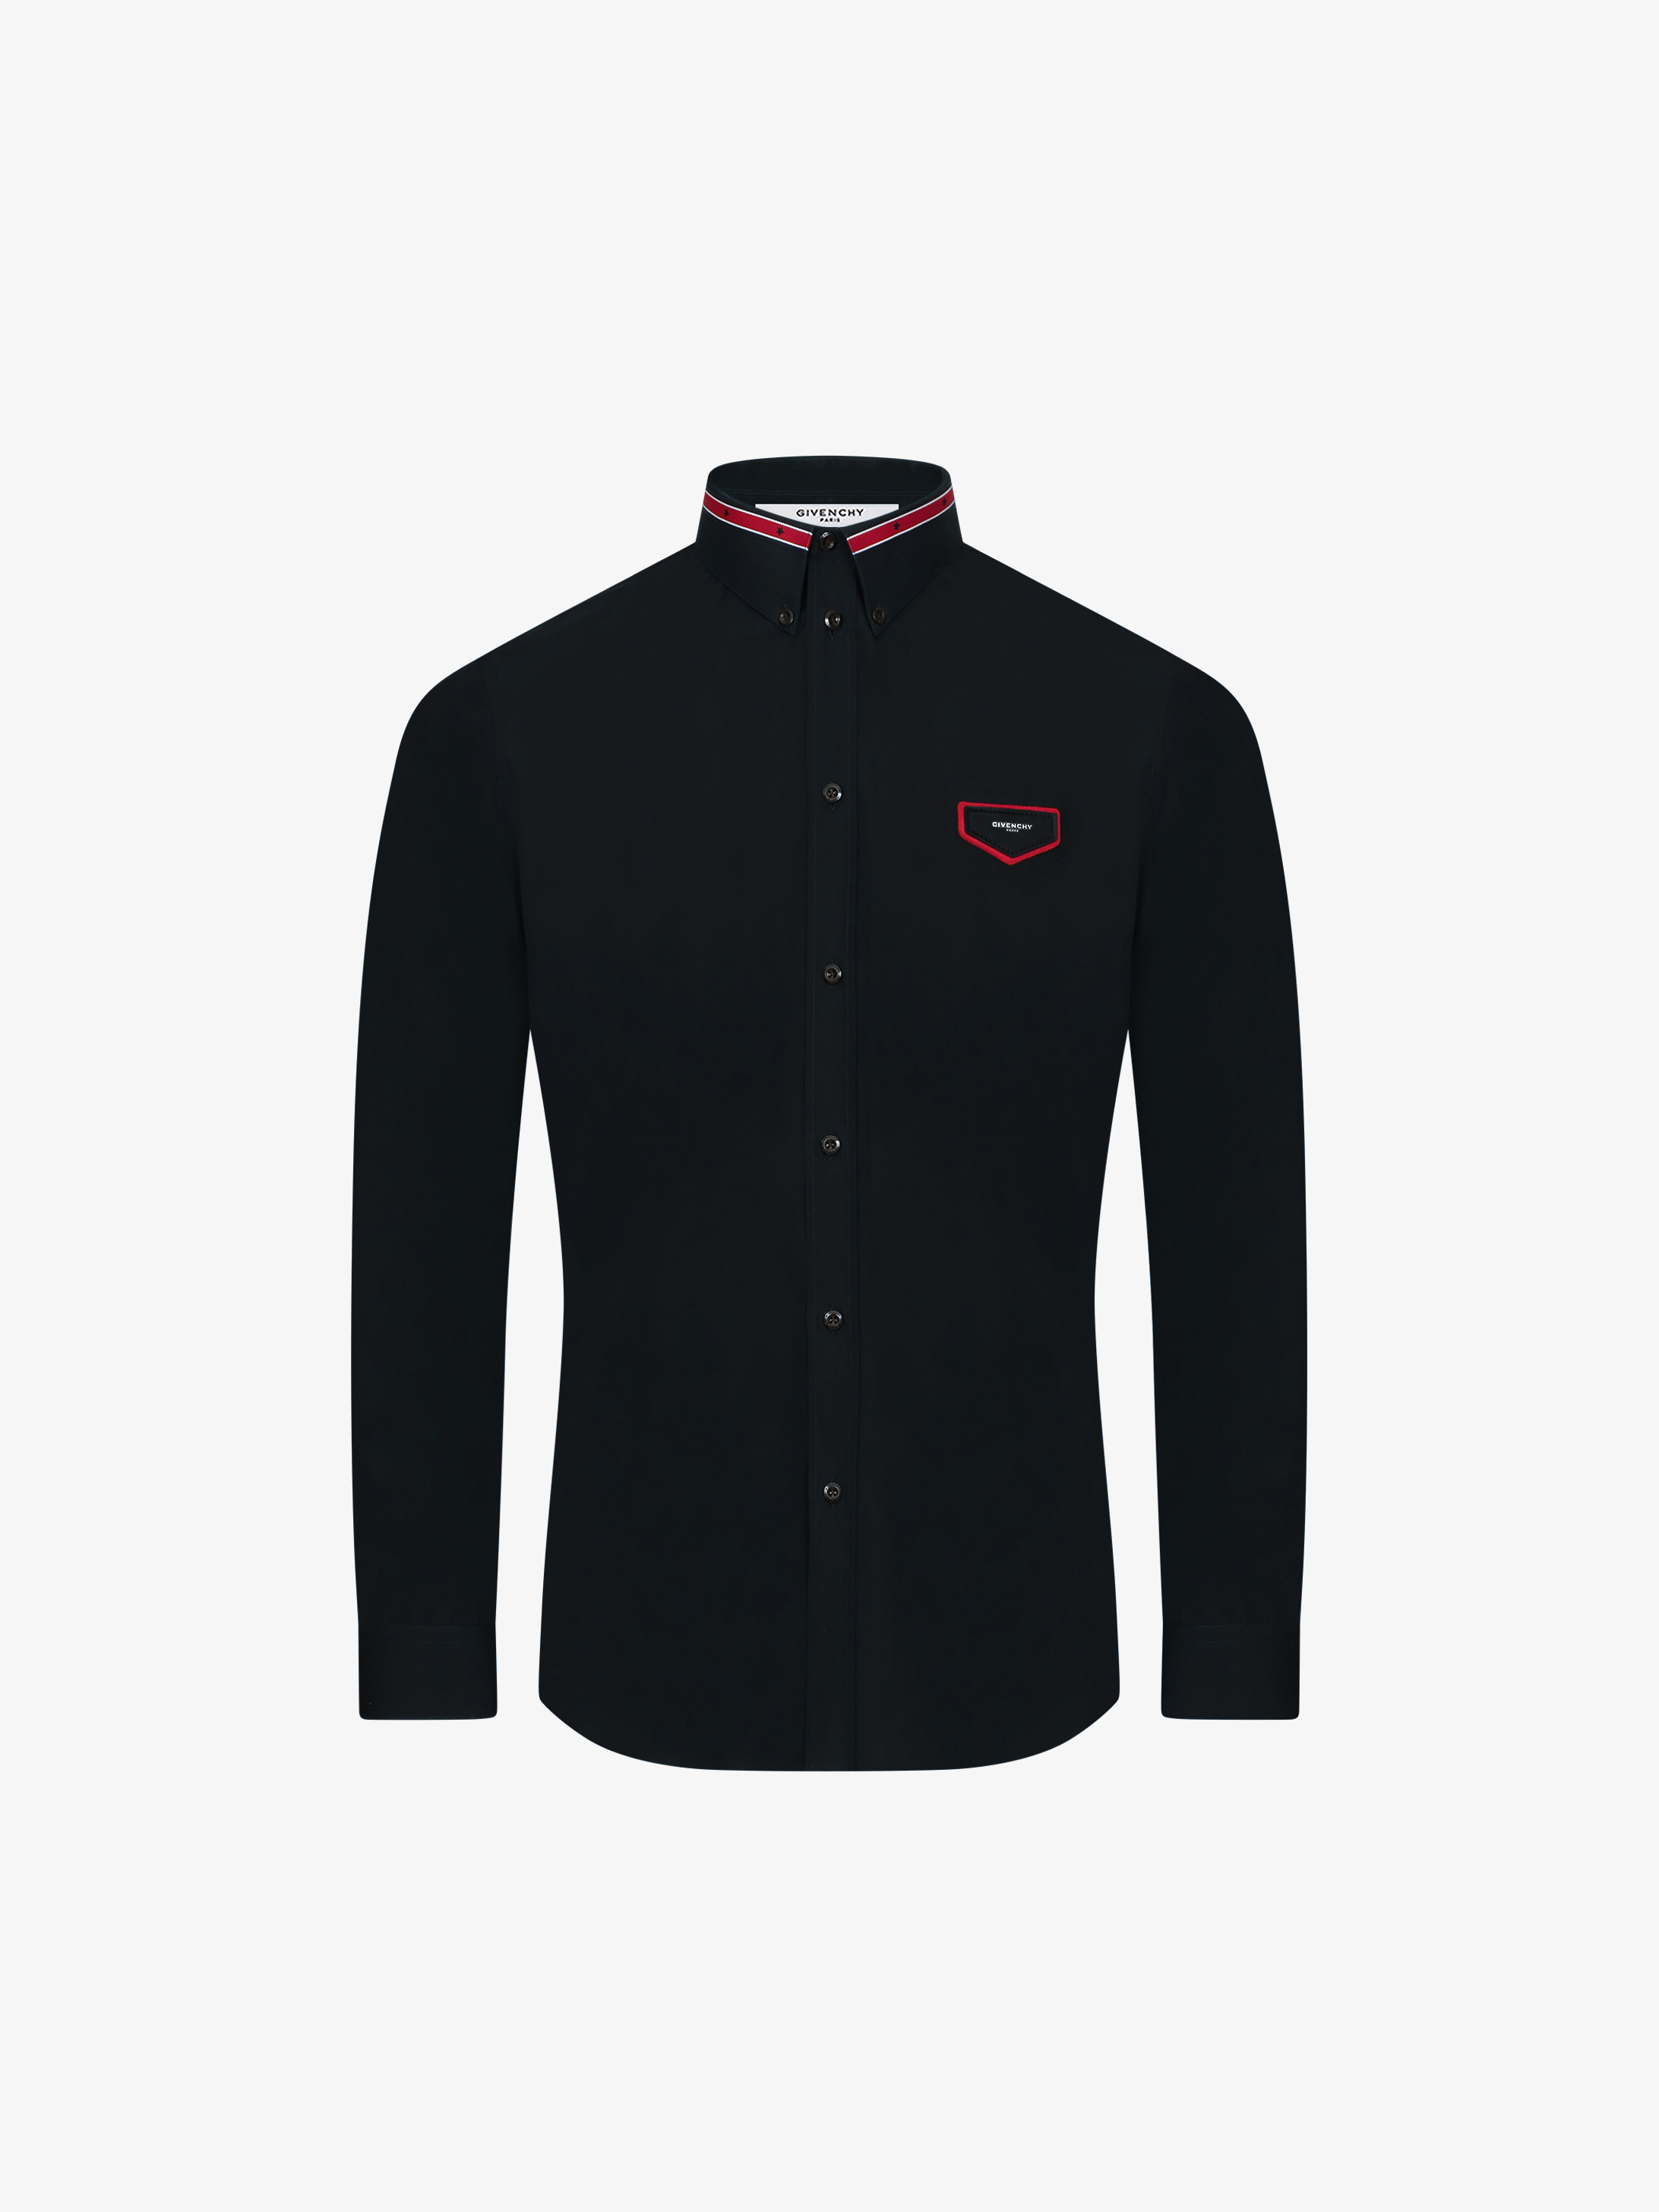 Poplin shirt with patch and iconic band